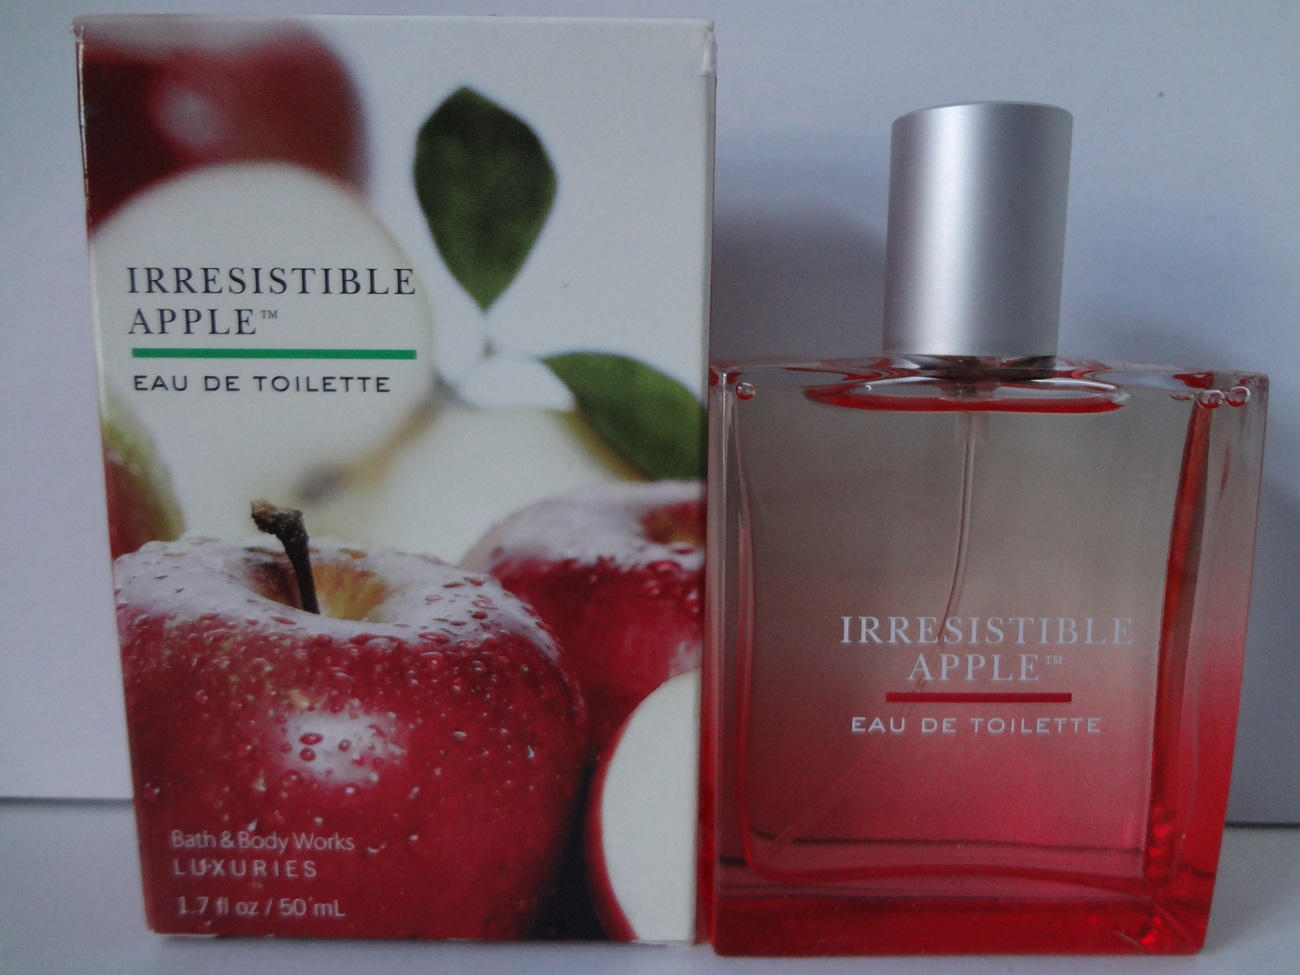 Bath & Body Works Luxuries Irresistible Apple Eau de Toilette 1.7 fl oz / 50 ml